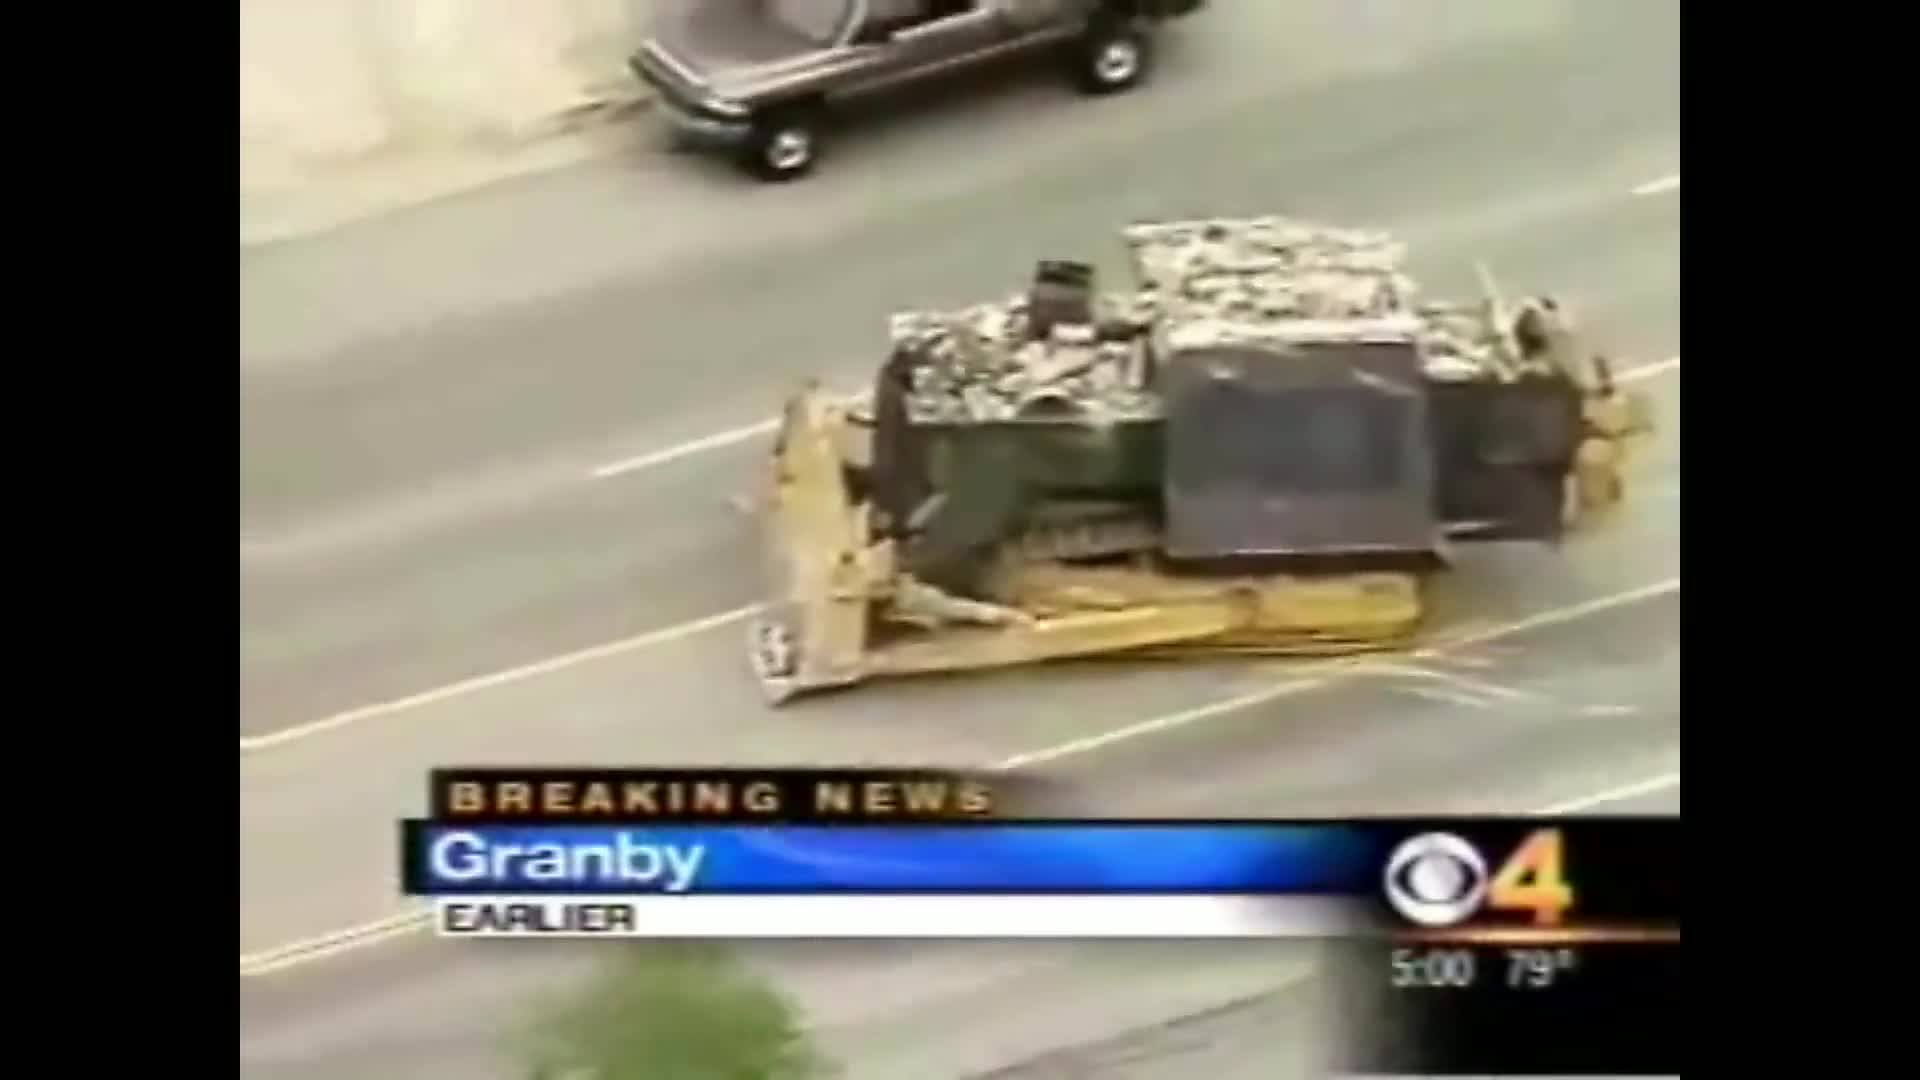 Celebrating 15 years since KILLDOZER: How a Man Made His Own Tank | Tales From the Bottle by Qxir